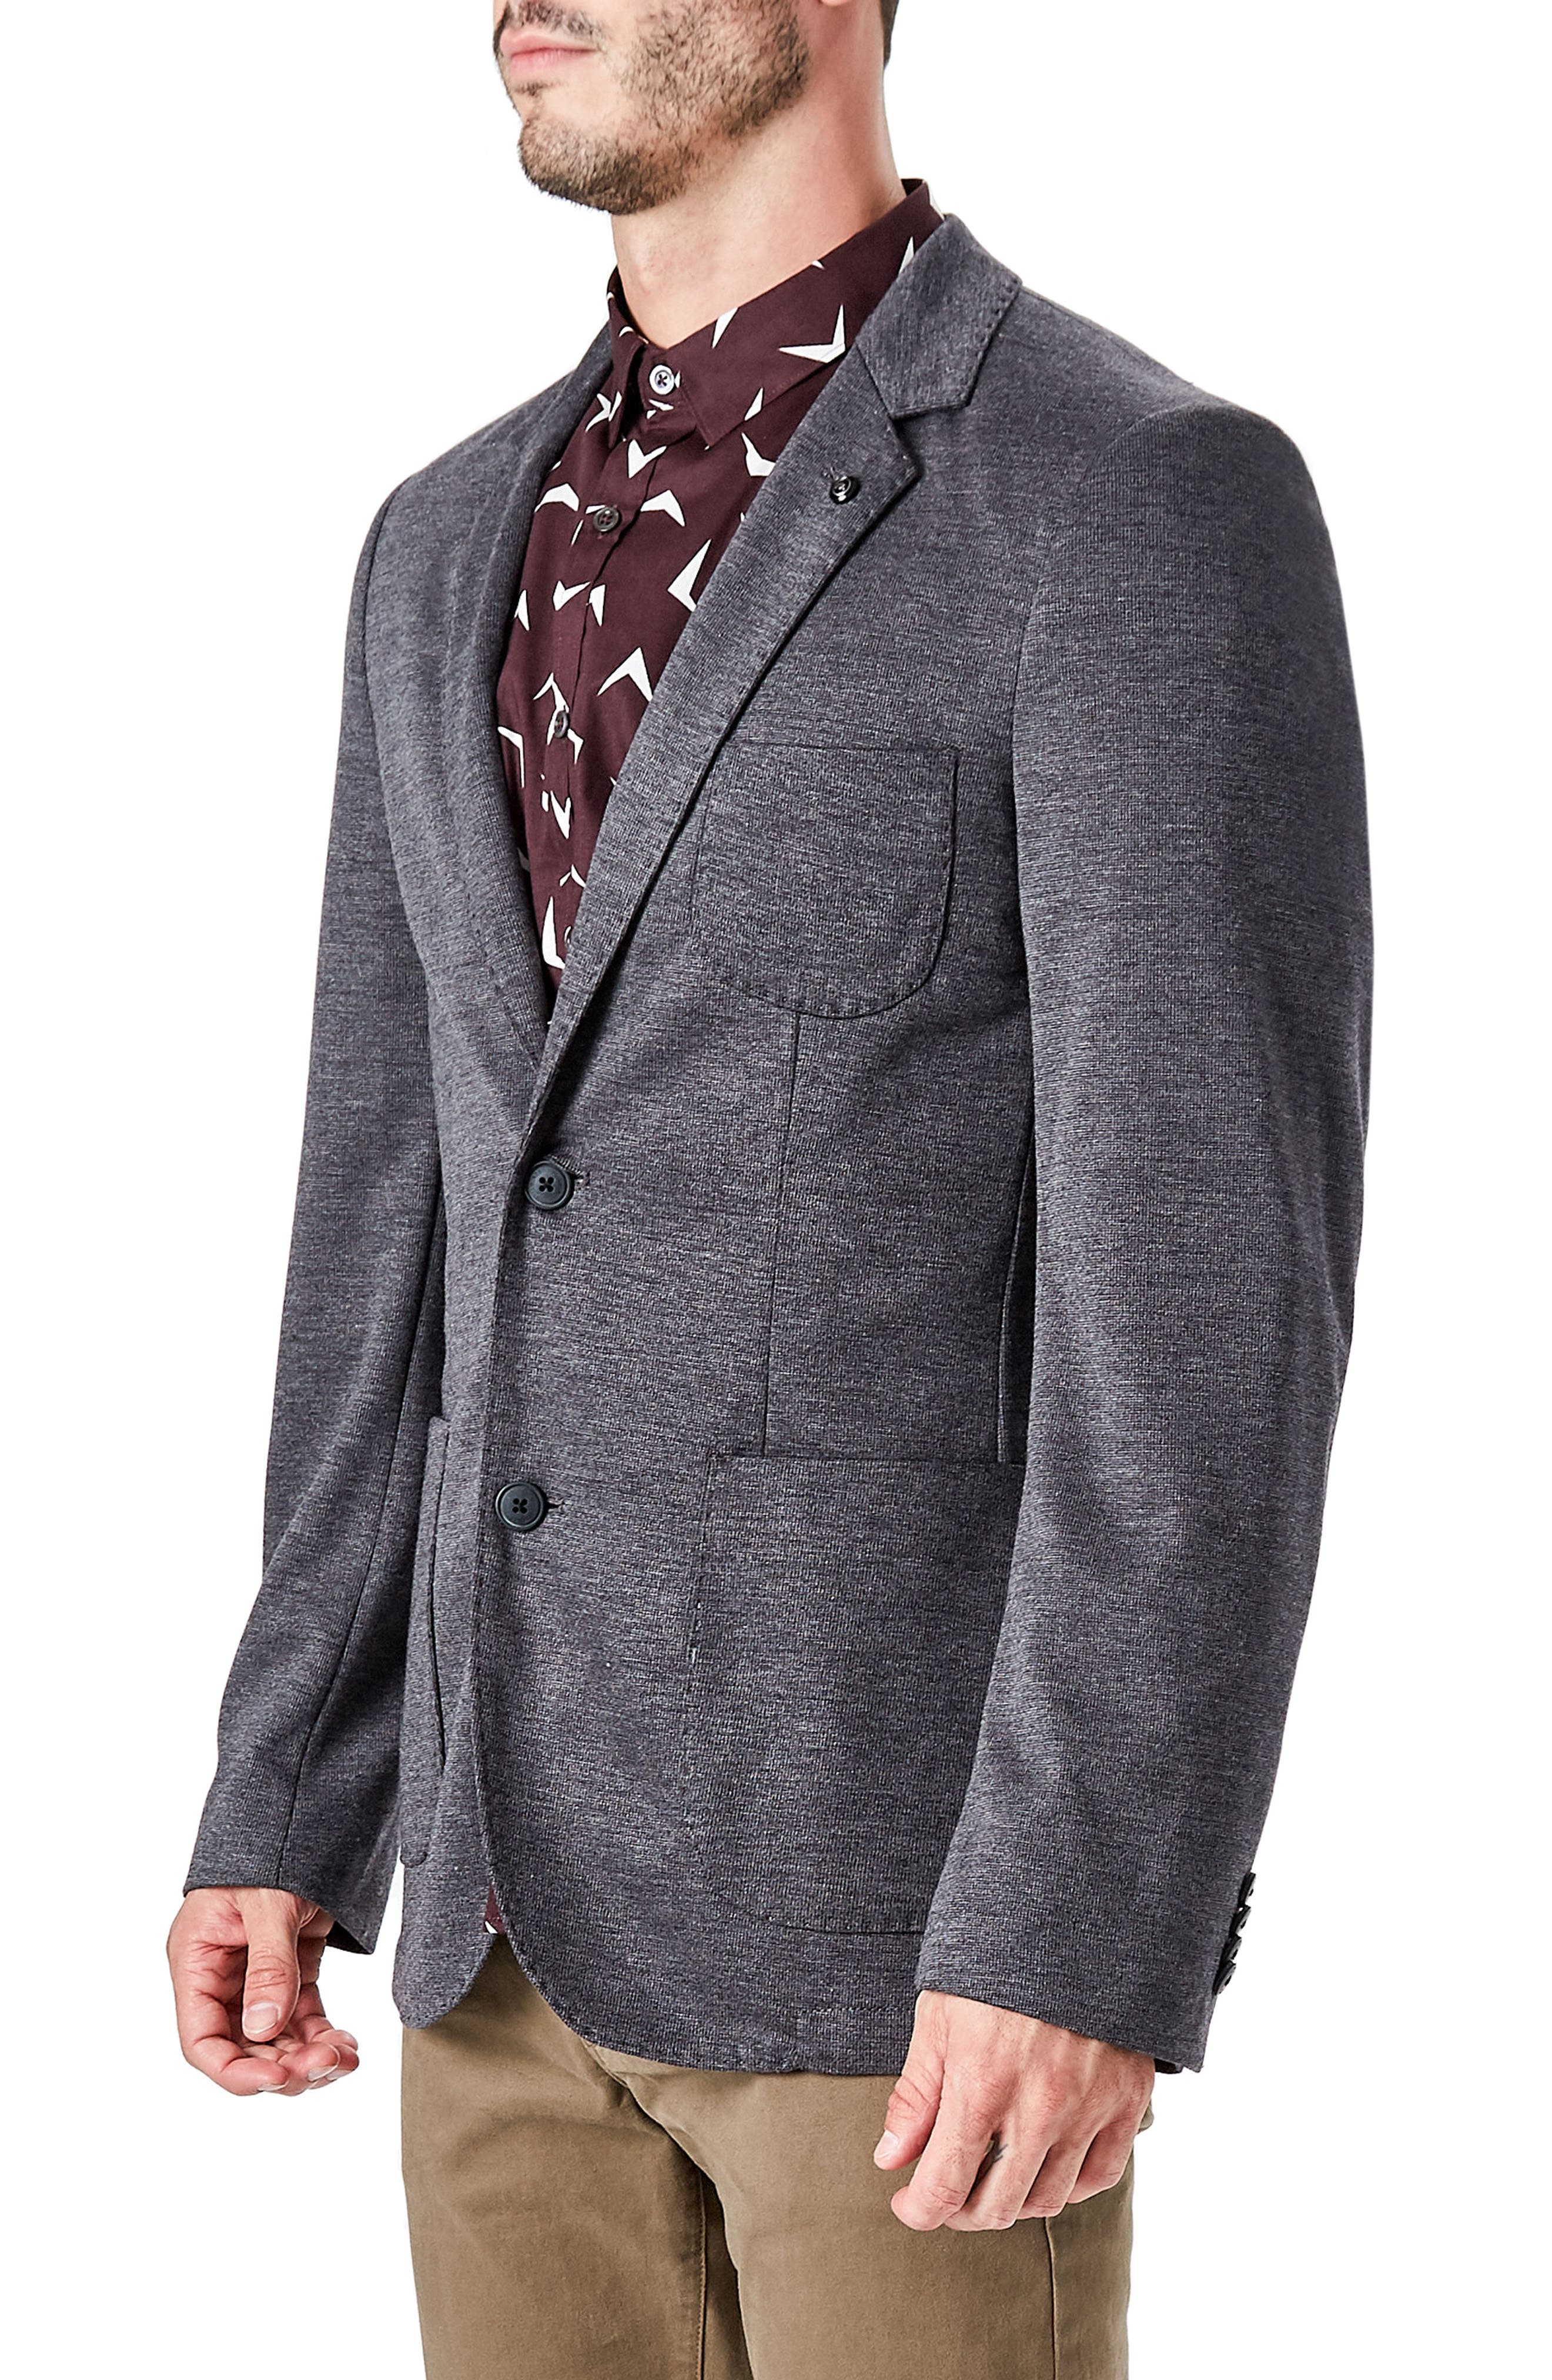 Massa Casual Blazer,                             Alternate thumbnail 3, color,                             Charcoal